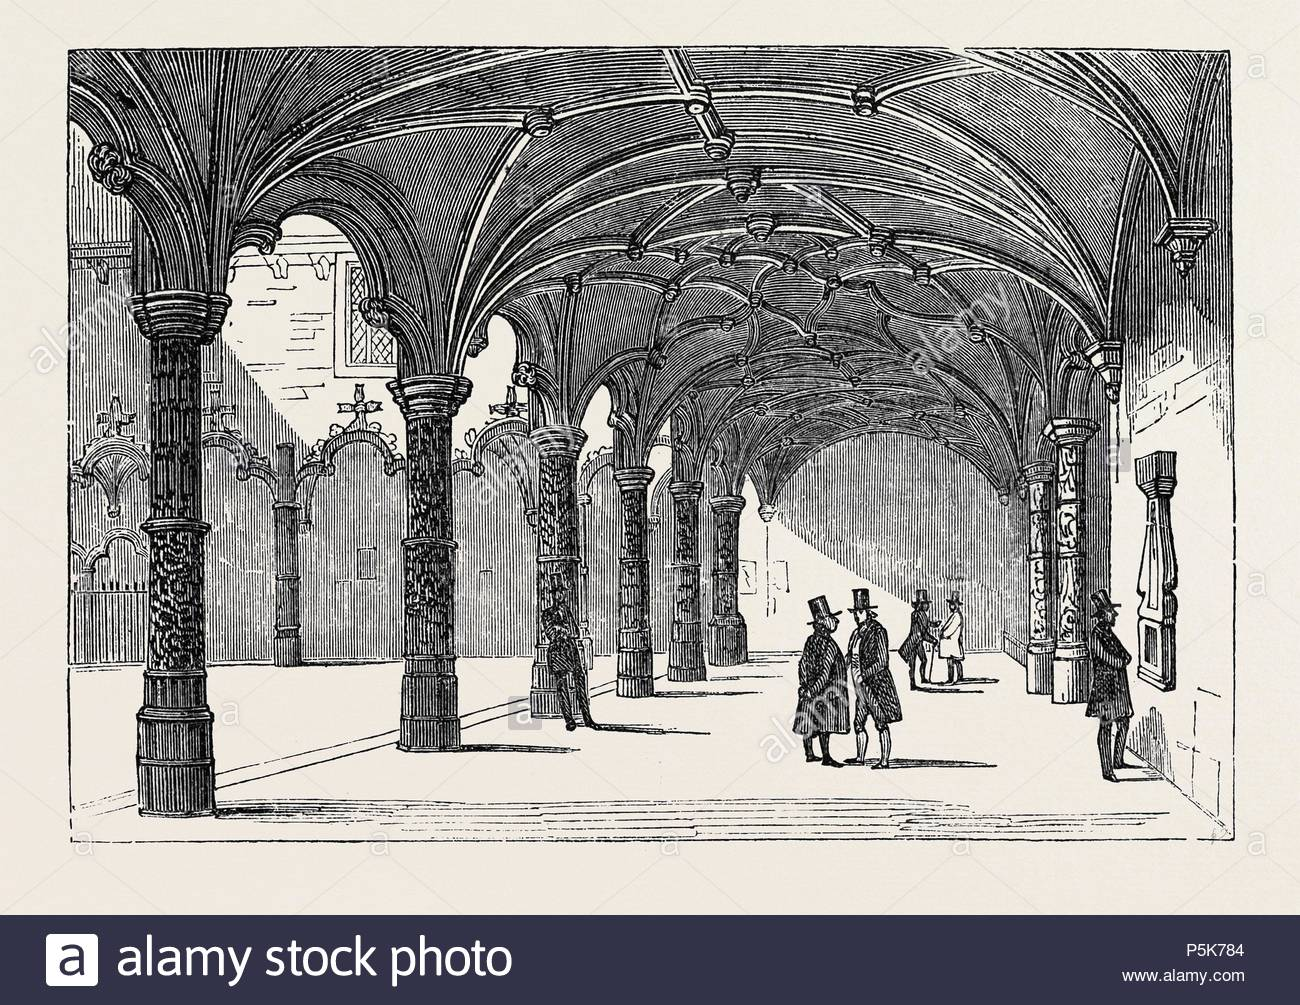 THE BOURSE AT ANTWERP. - Stock Image